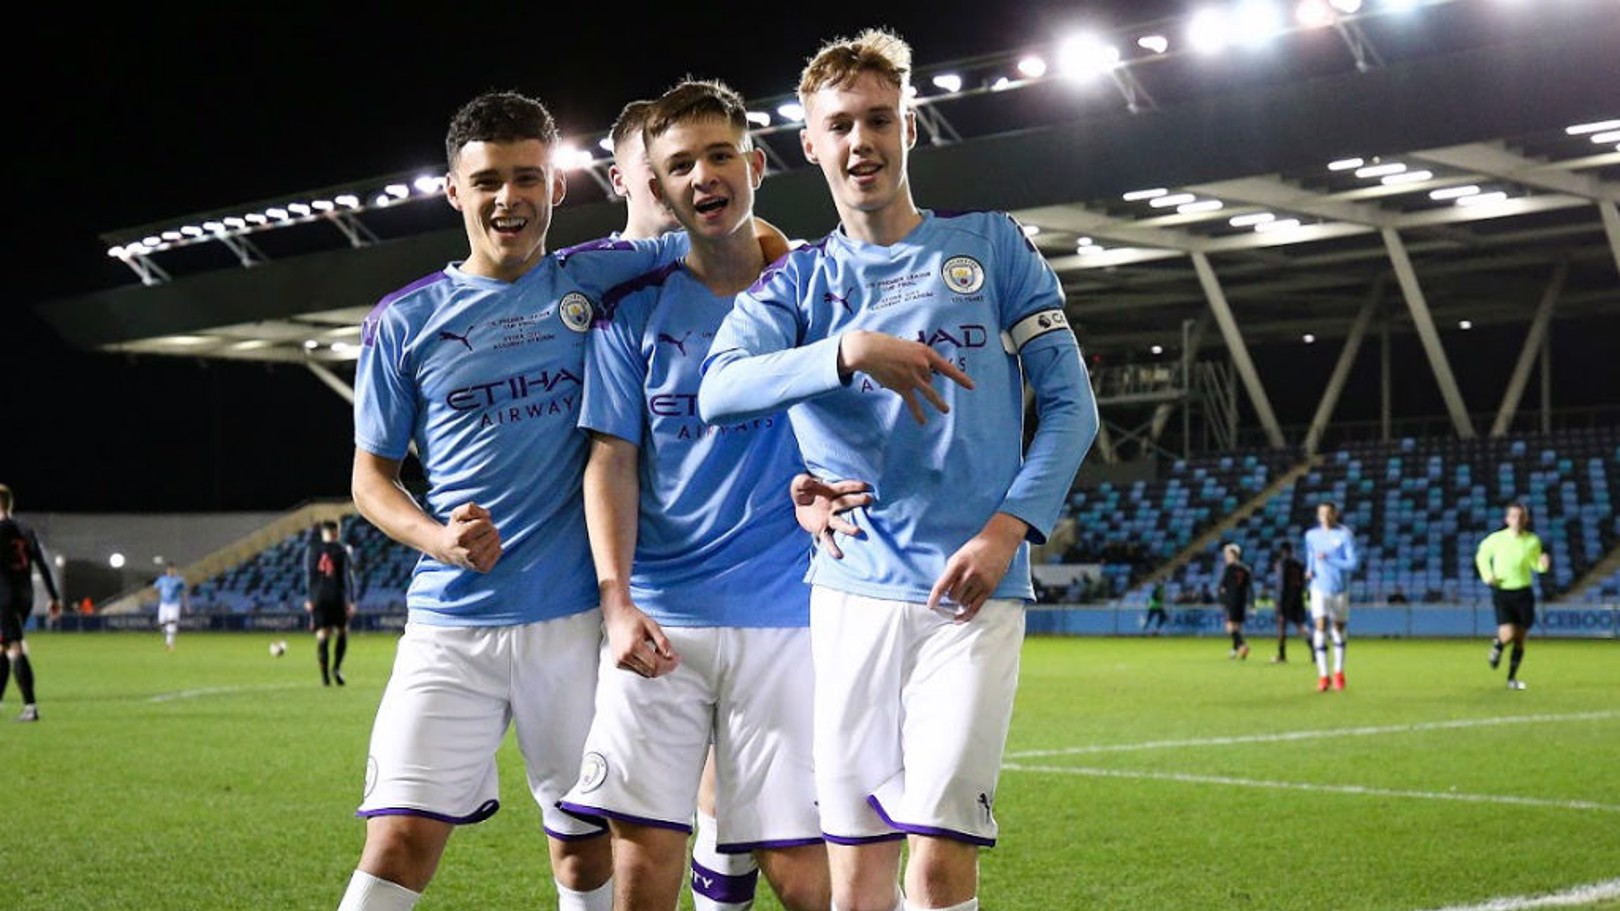 City Under 18s hungry for more success, says Palmer